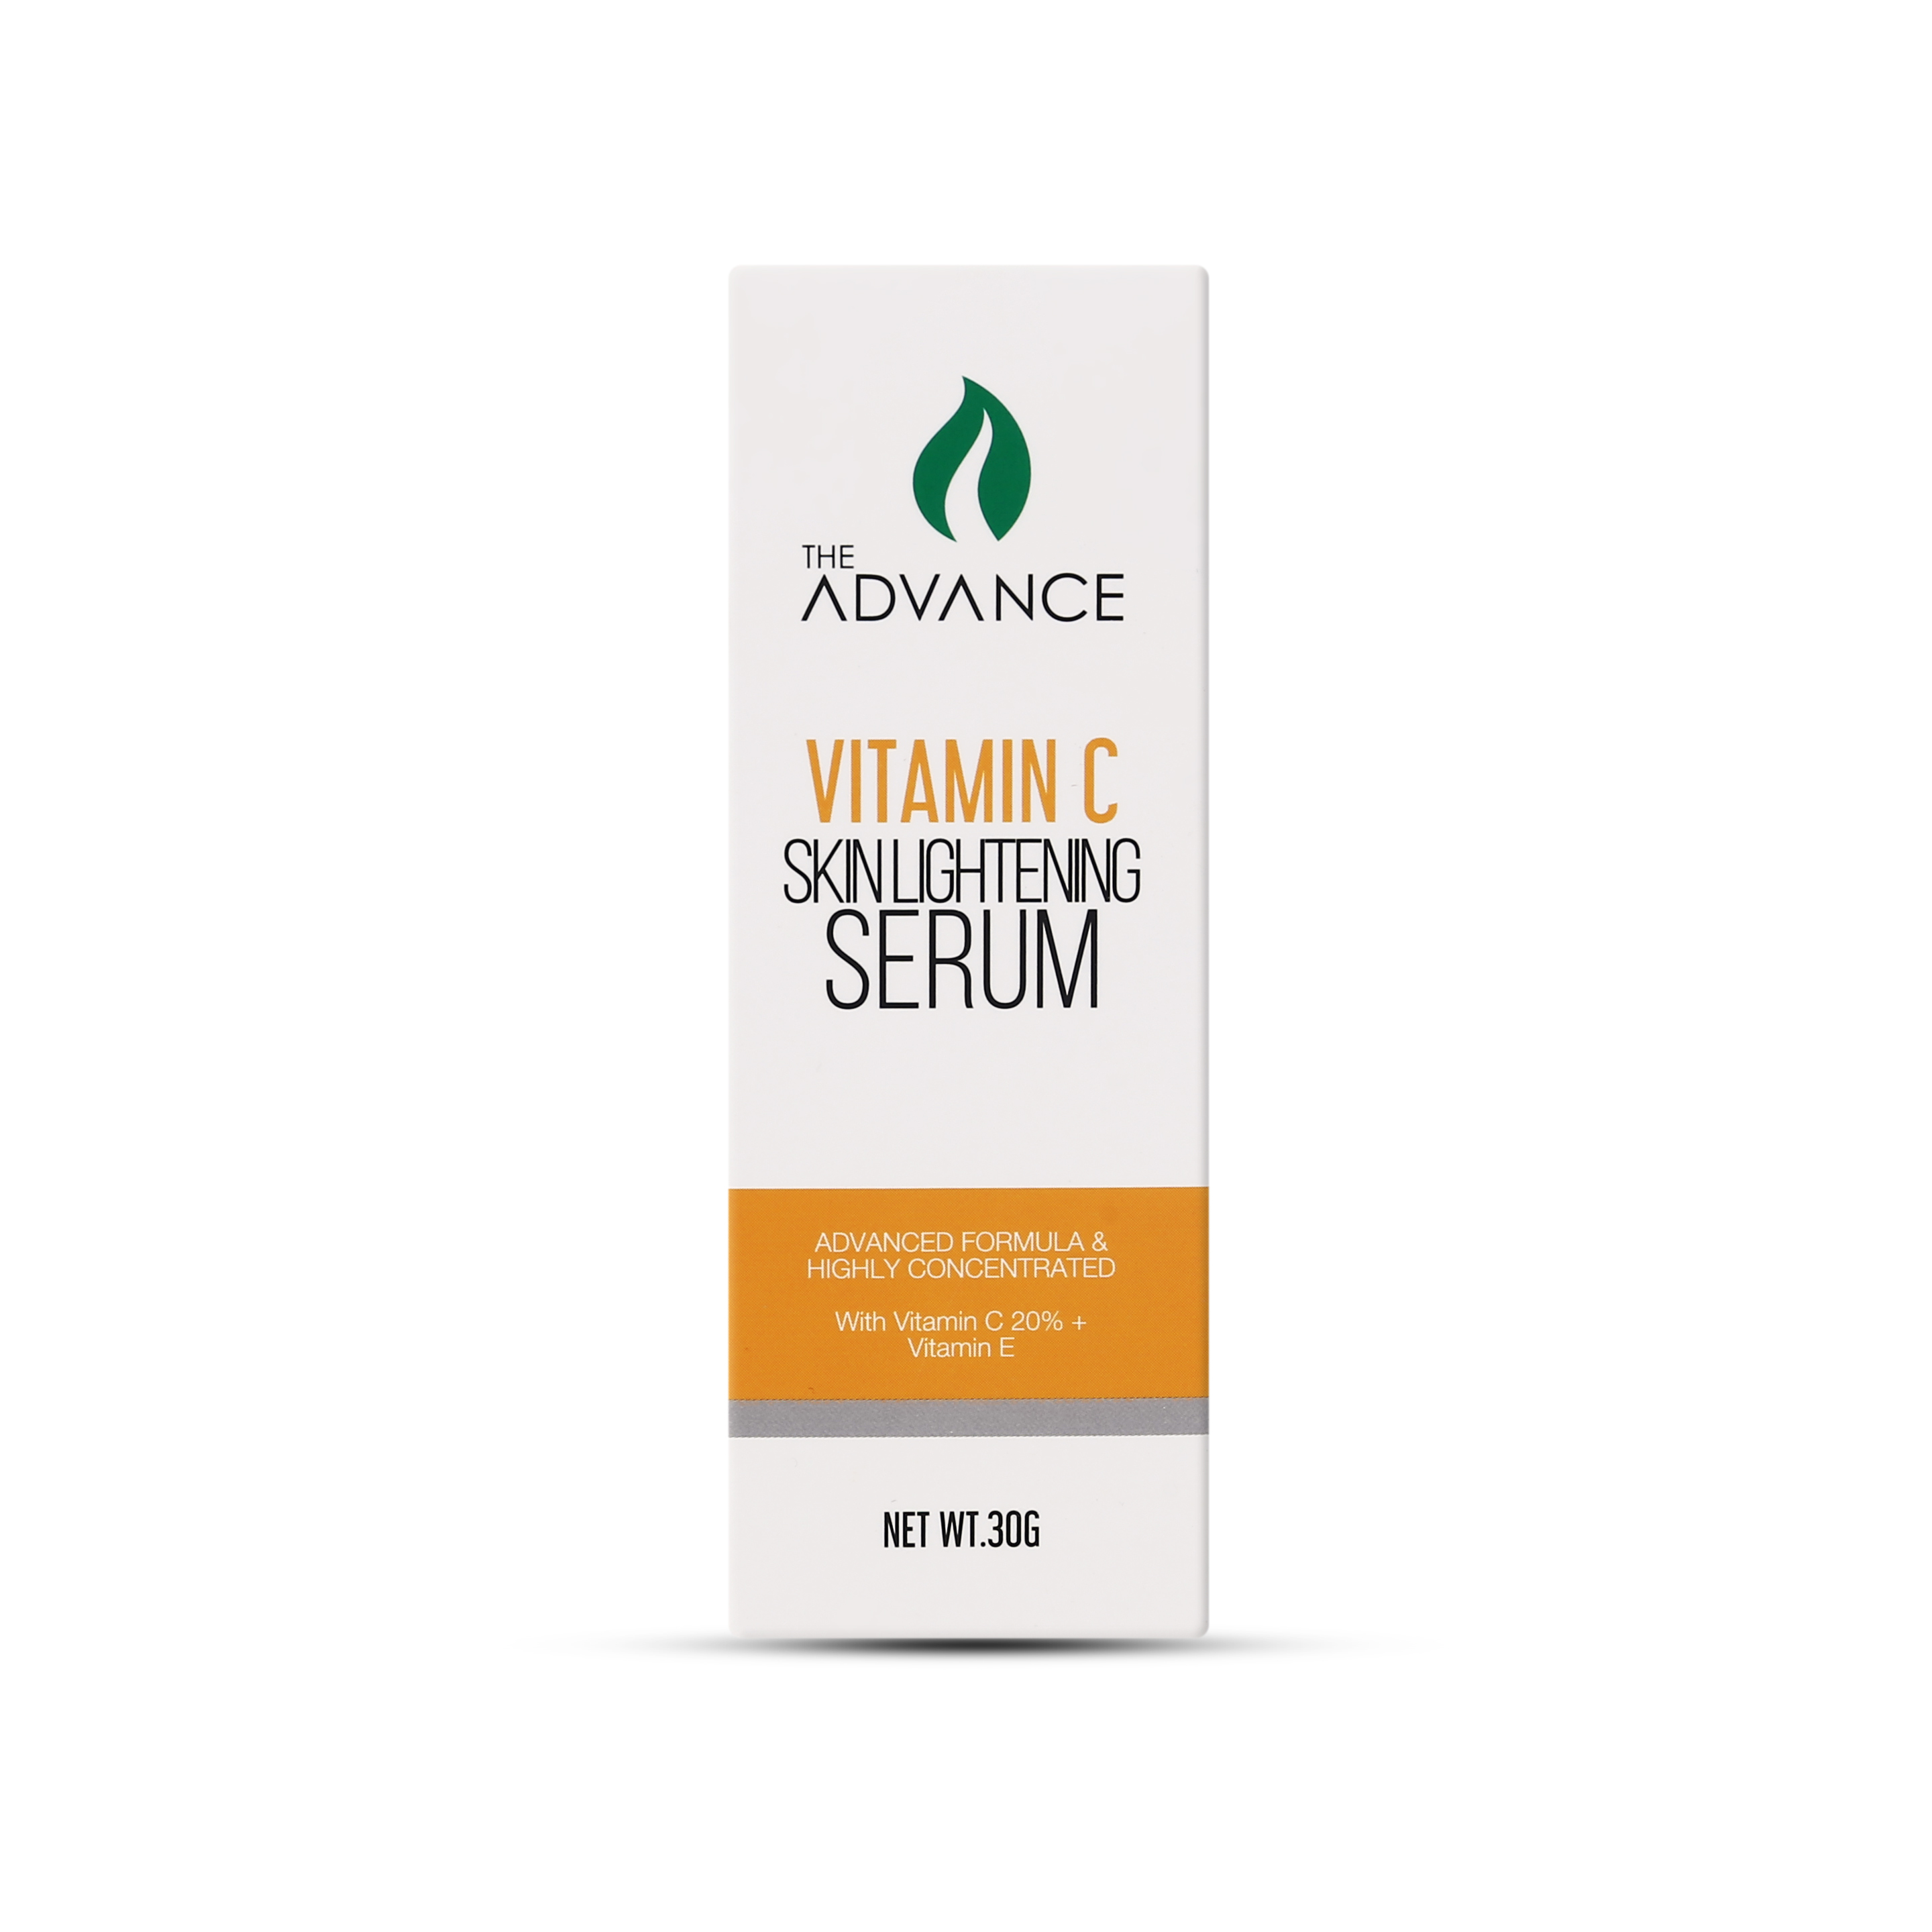 VITAMIN C SKIN LIGHTENING SERUM